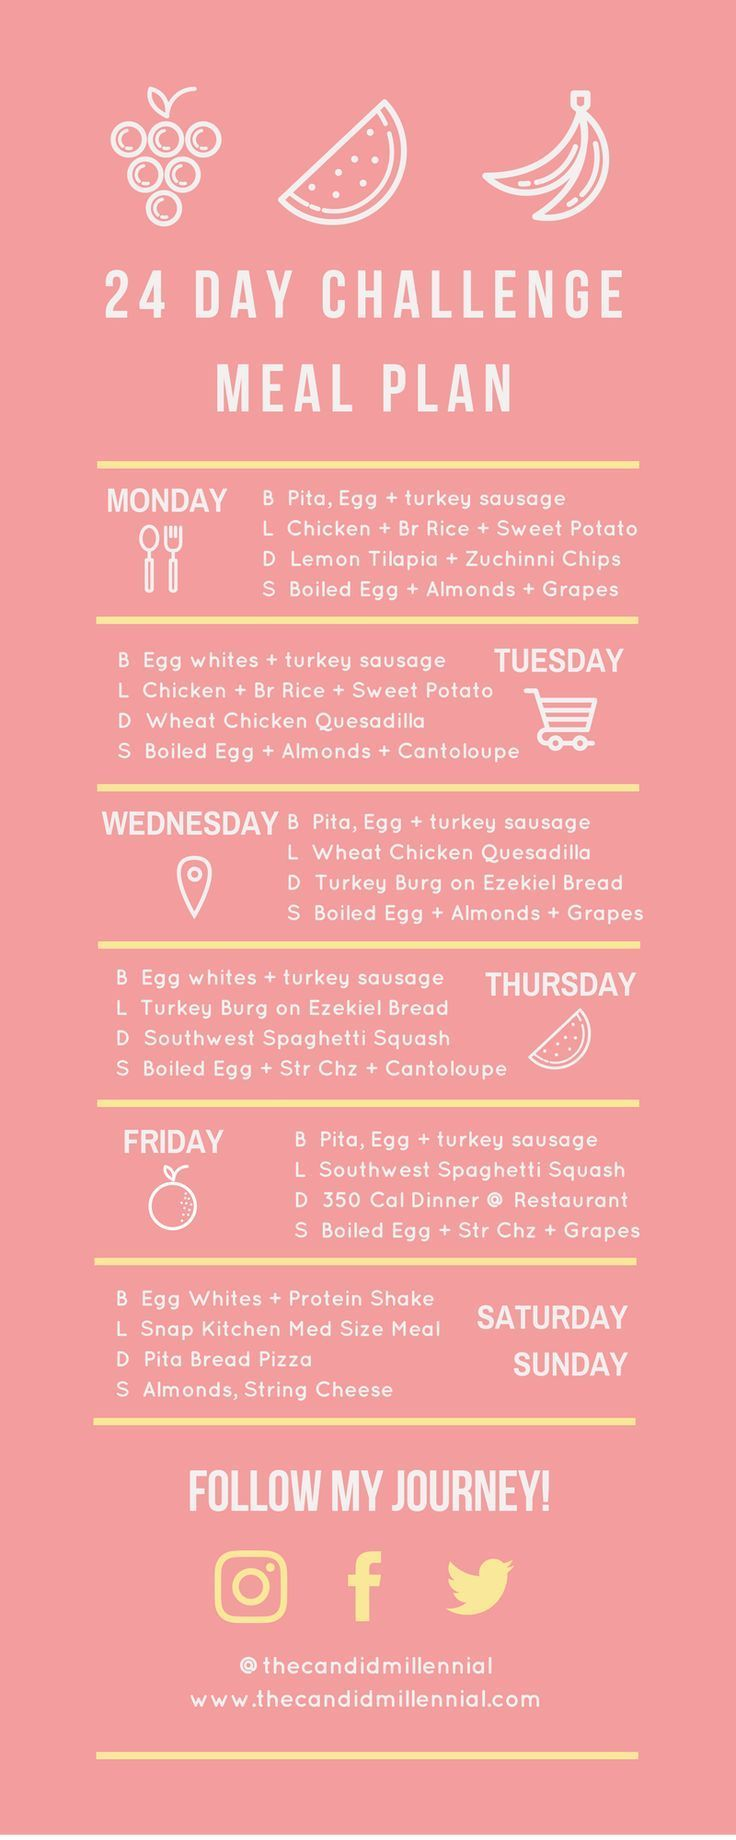 1200-1500 calories per day. 24 Day Challenge meal plan.